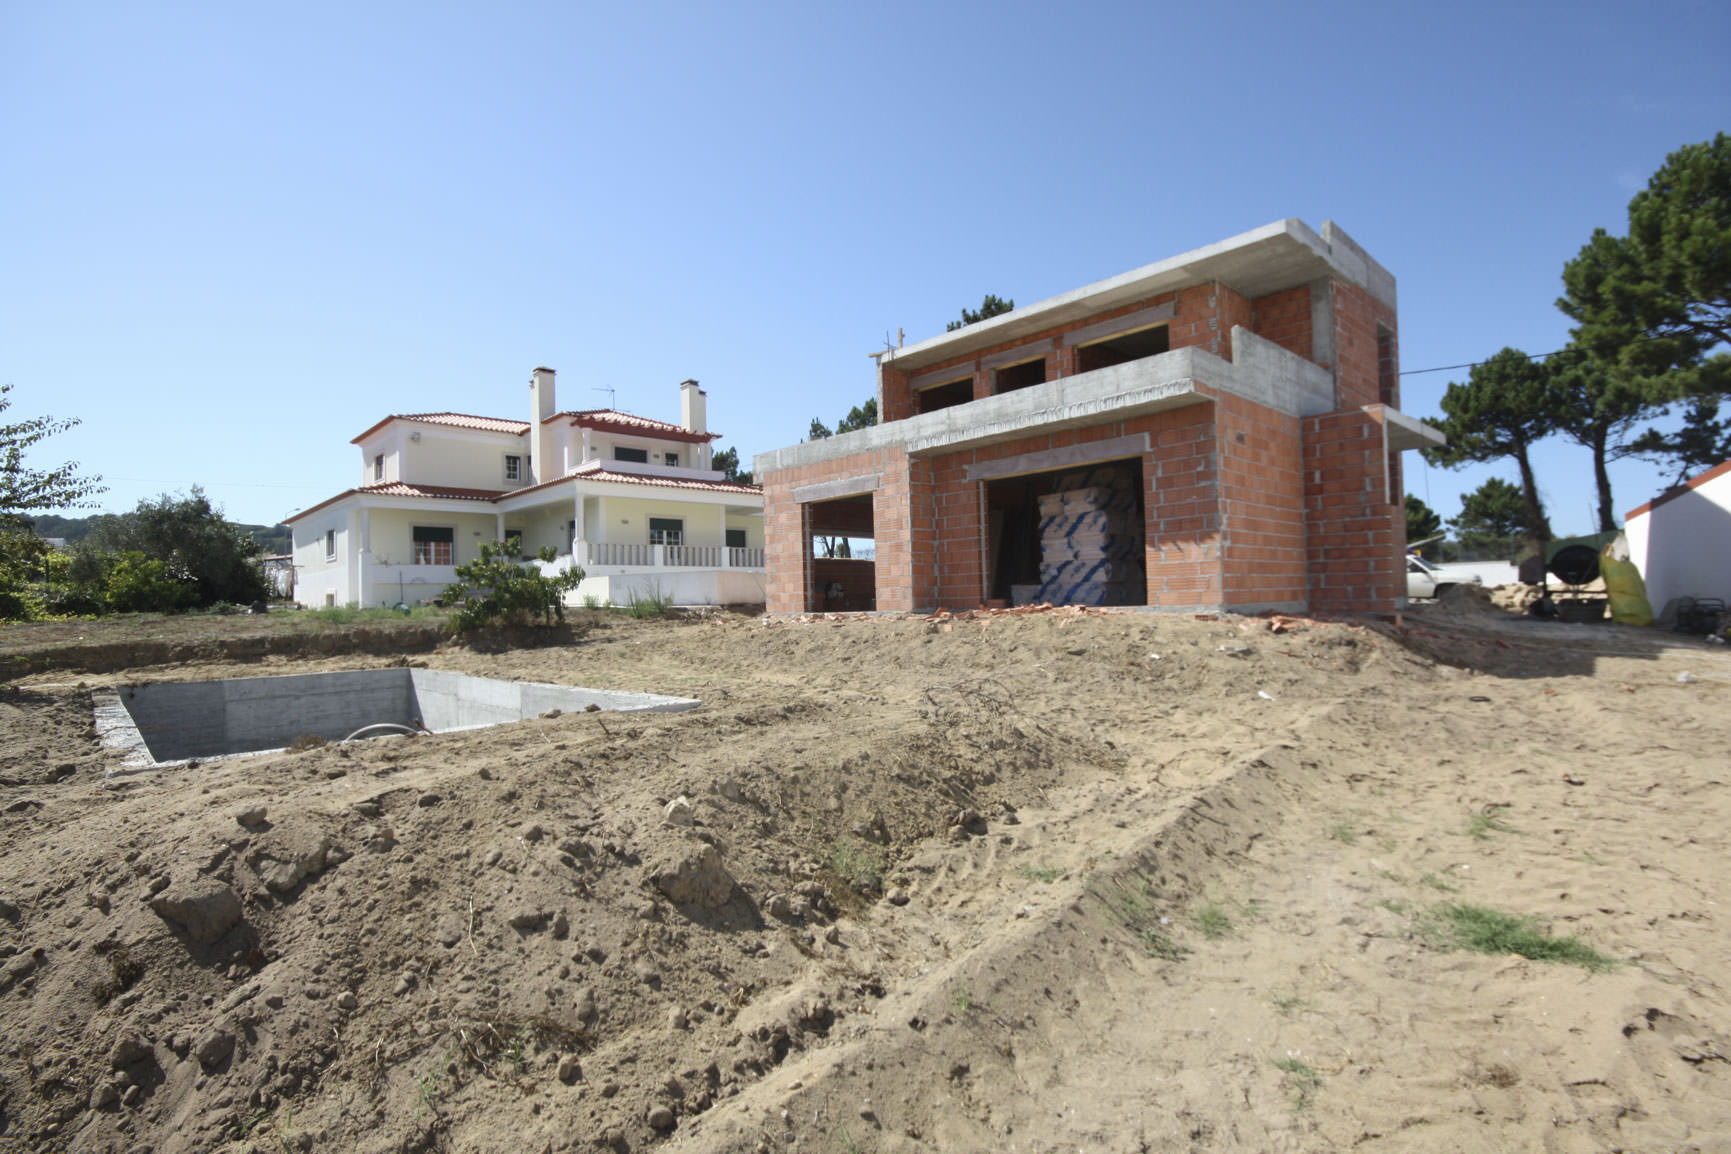 10-portugal-realty-silver-coast-property-for-sale-presprop-contsruction-new-build